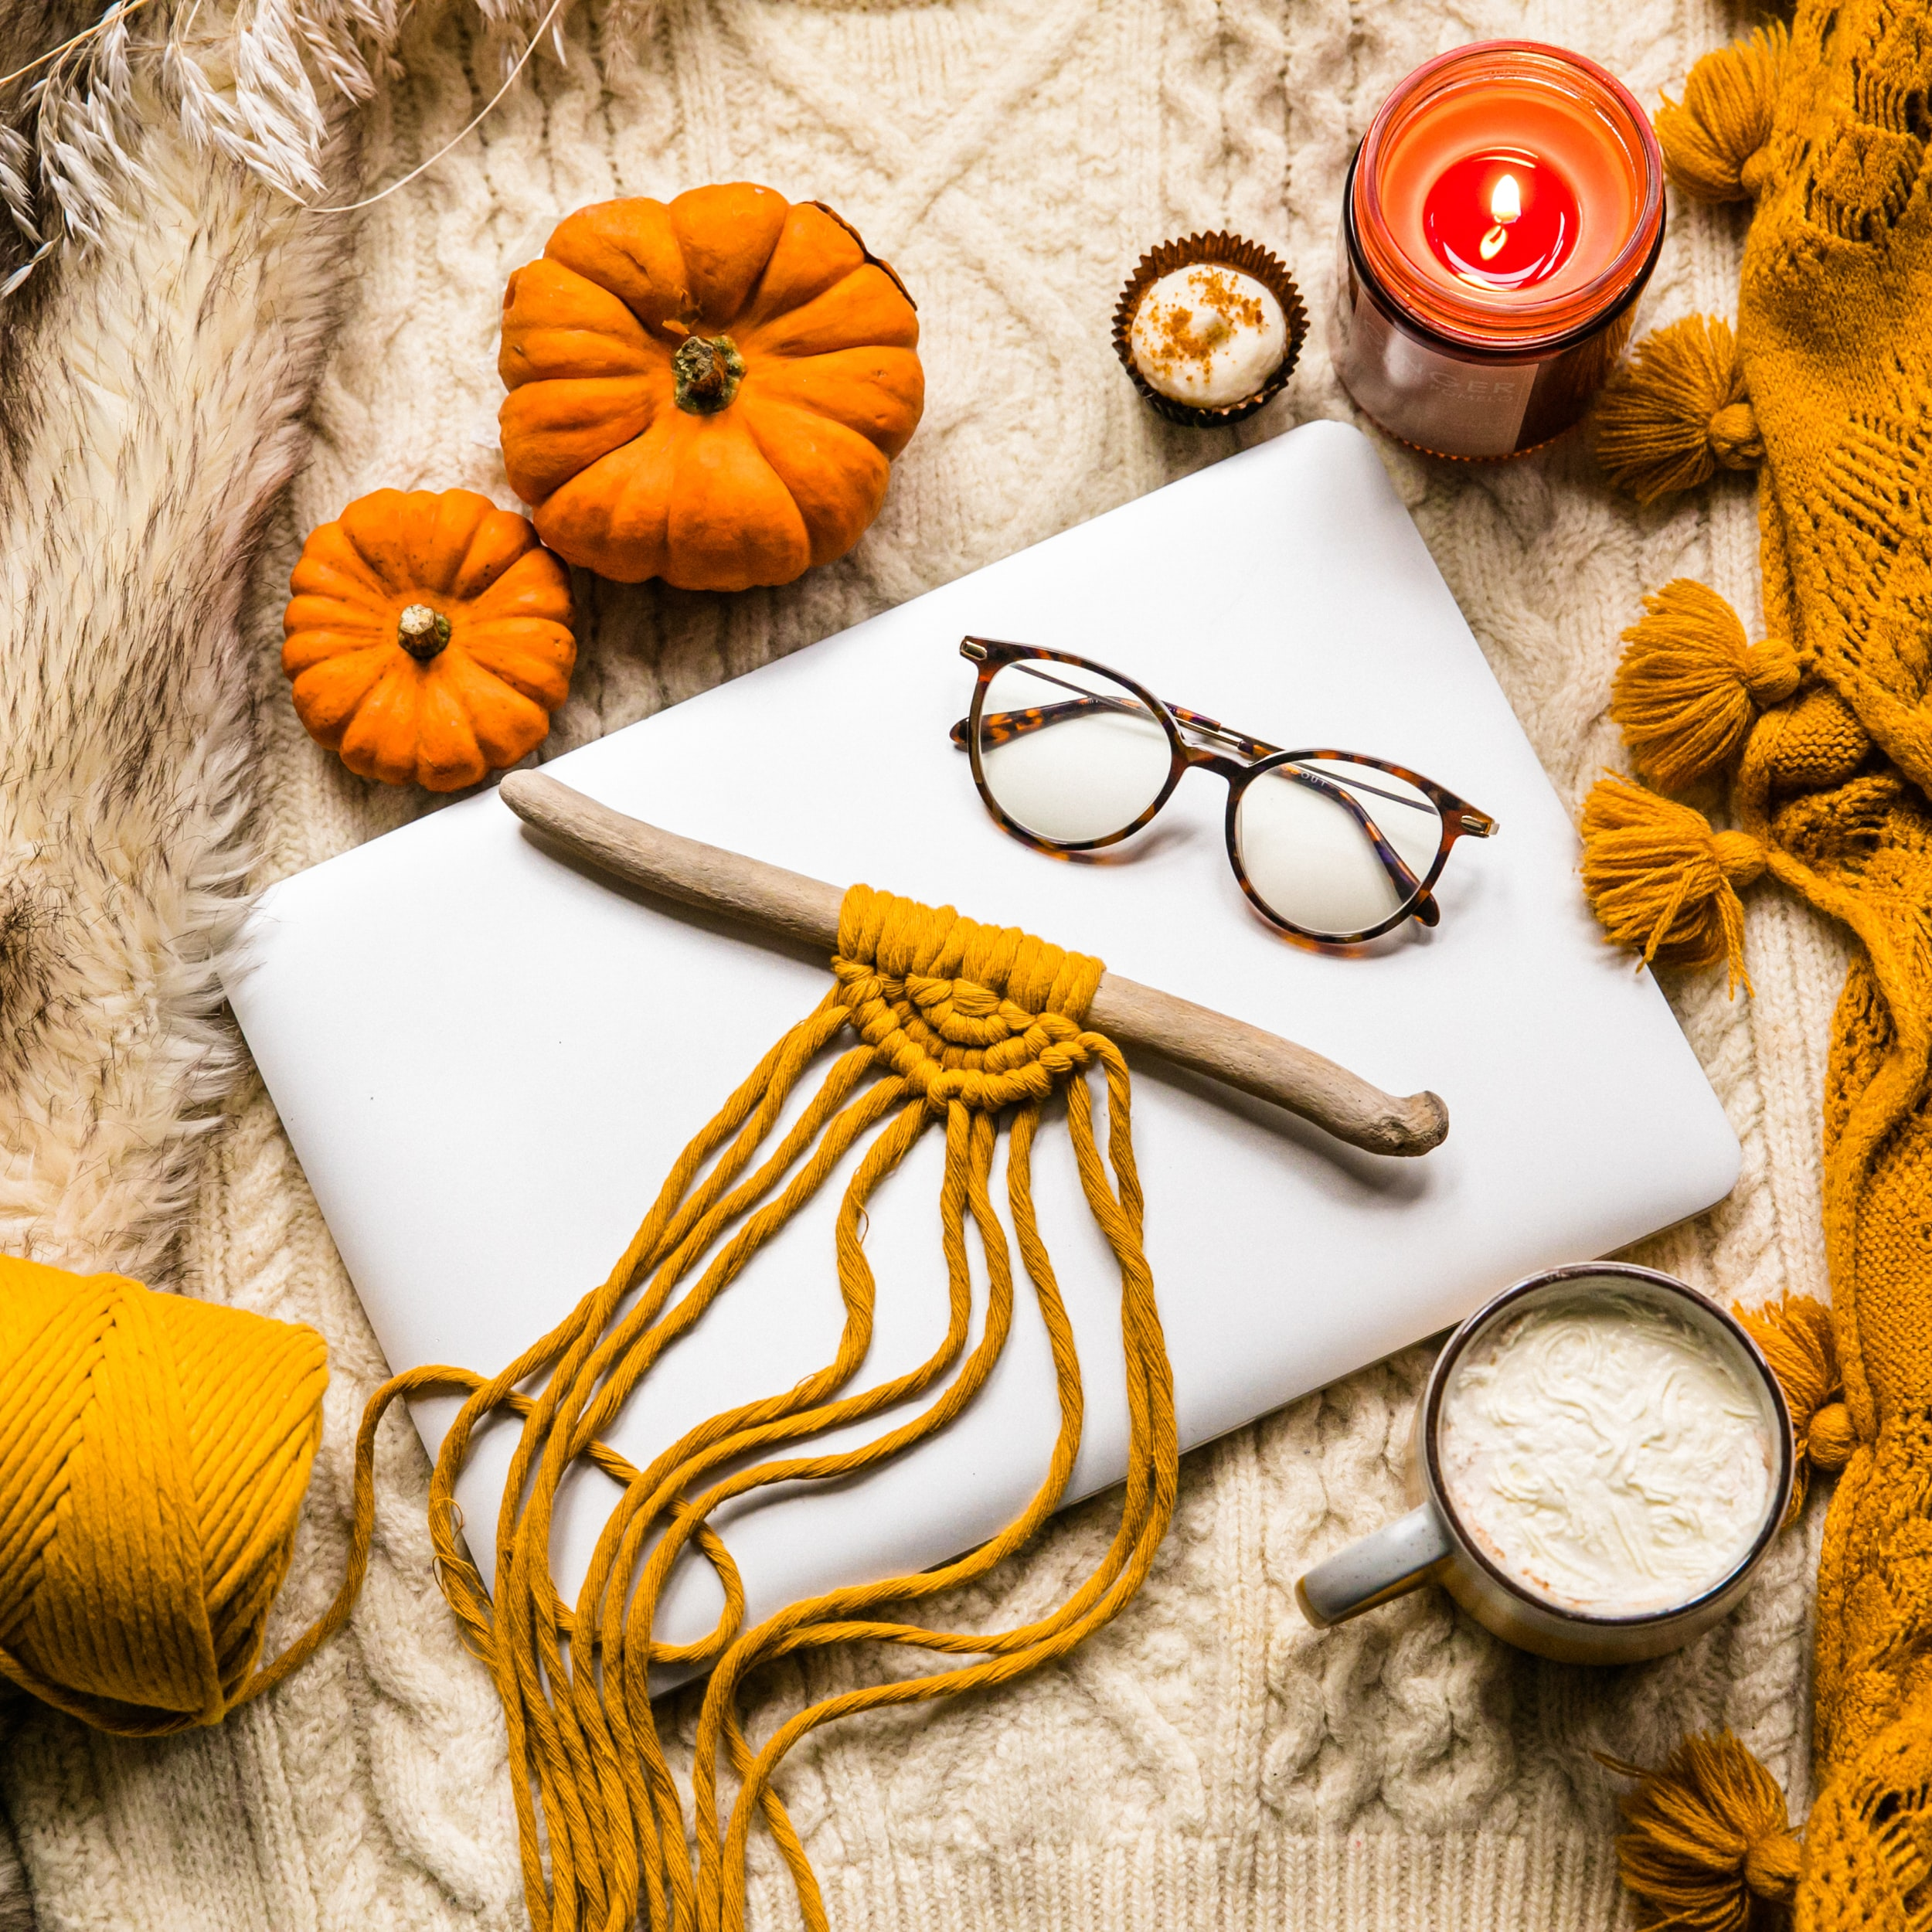 122161 Screensavers and Wallpapers Pumpkin for phone. Download Pumpkin, Miscellanea, Miscellaneous, Threads, Thread, Notebook, Glasses, Spectacles, Laptop, Knitted pictures for free